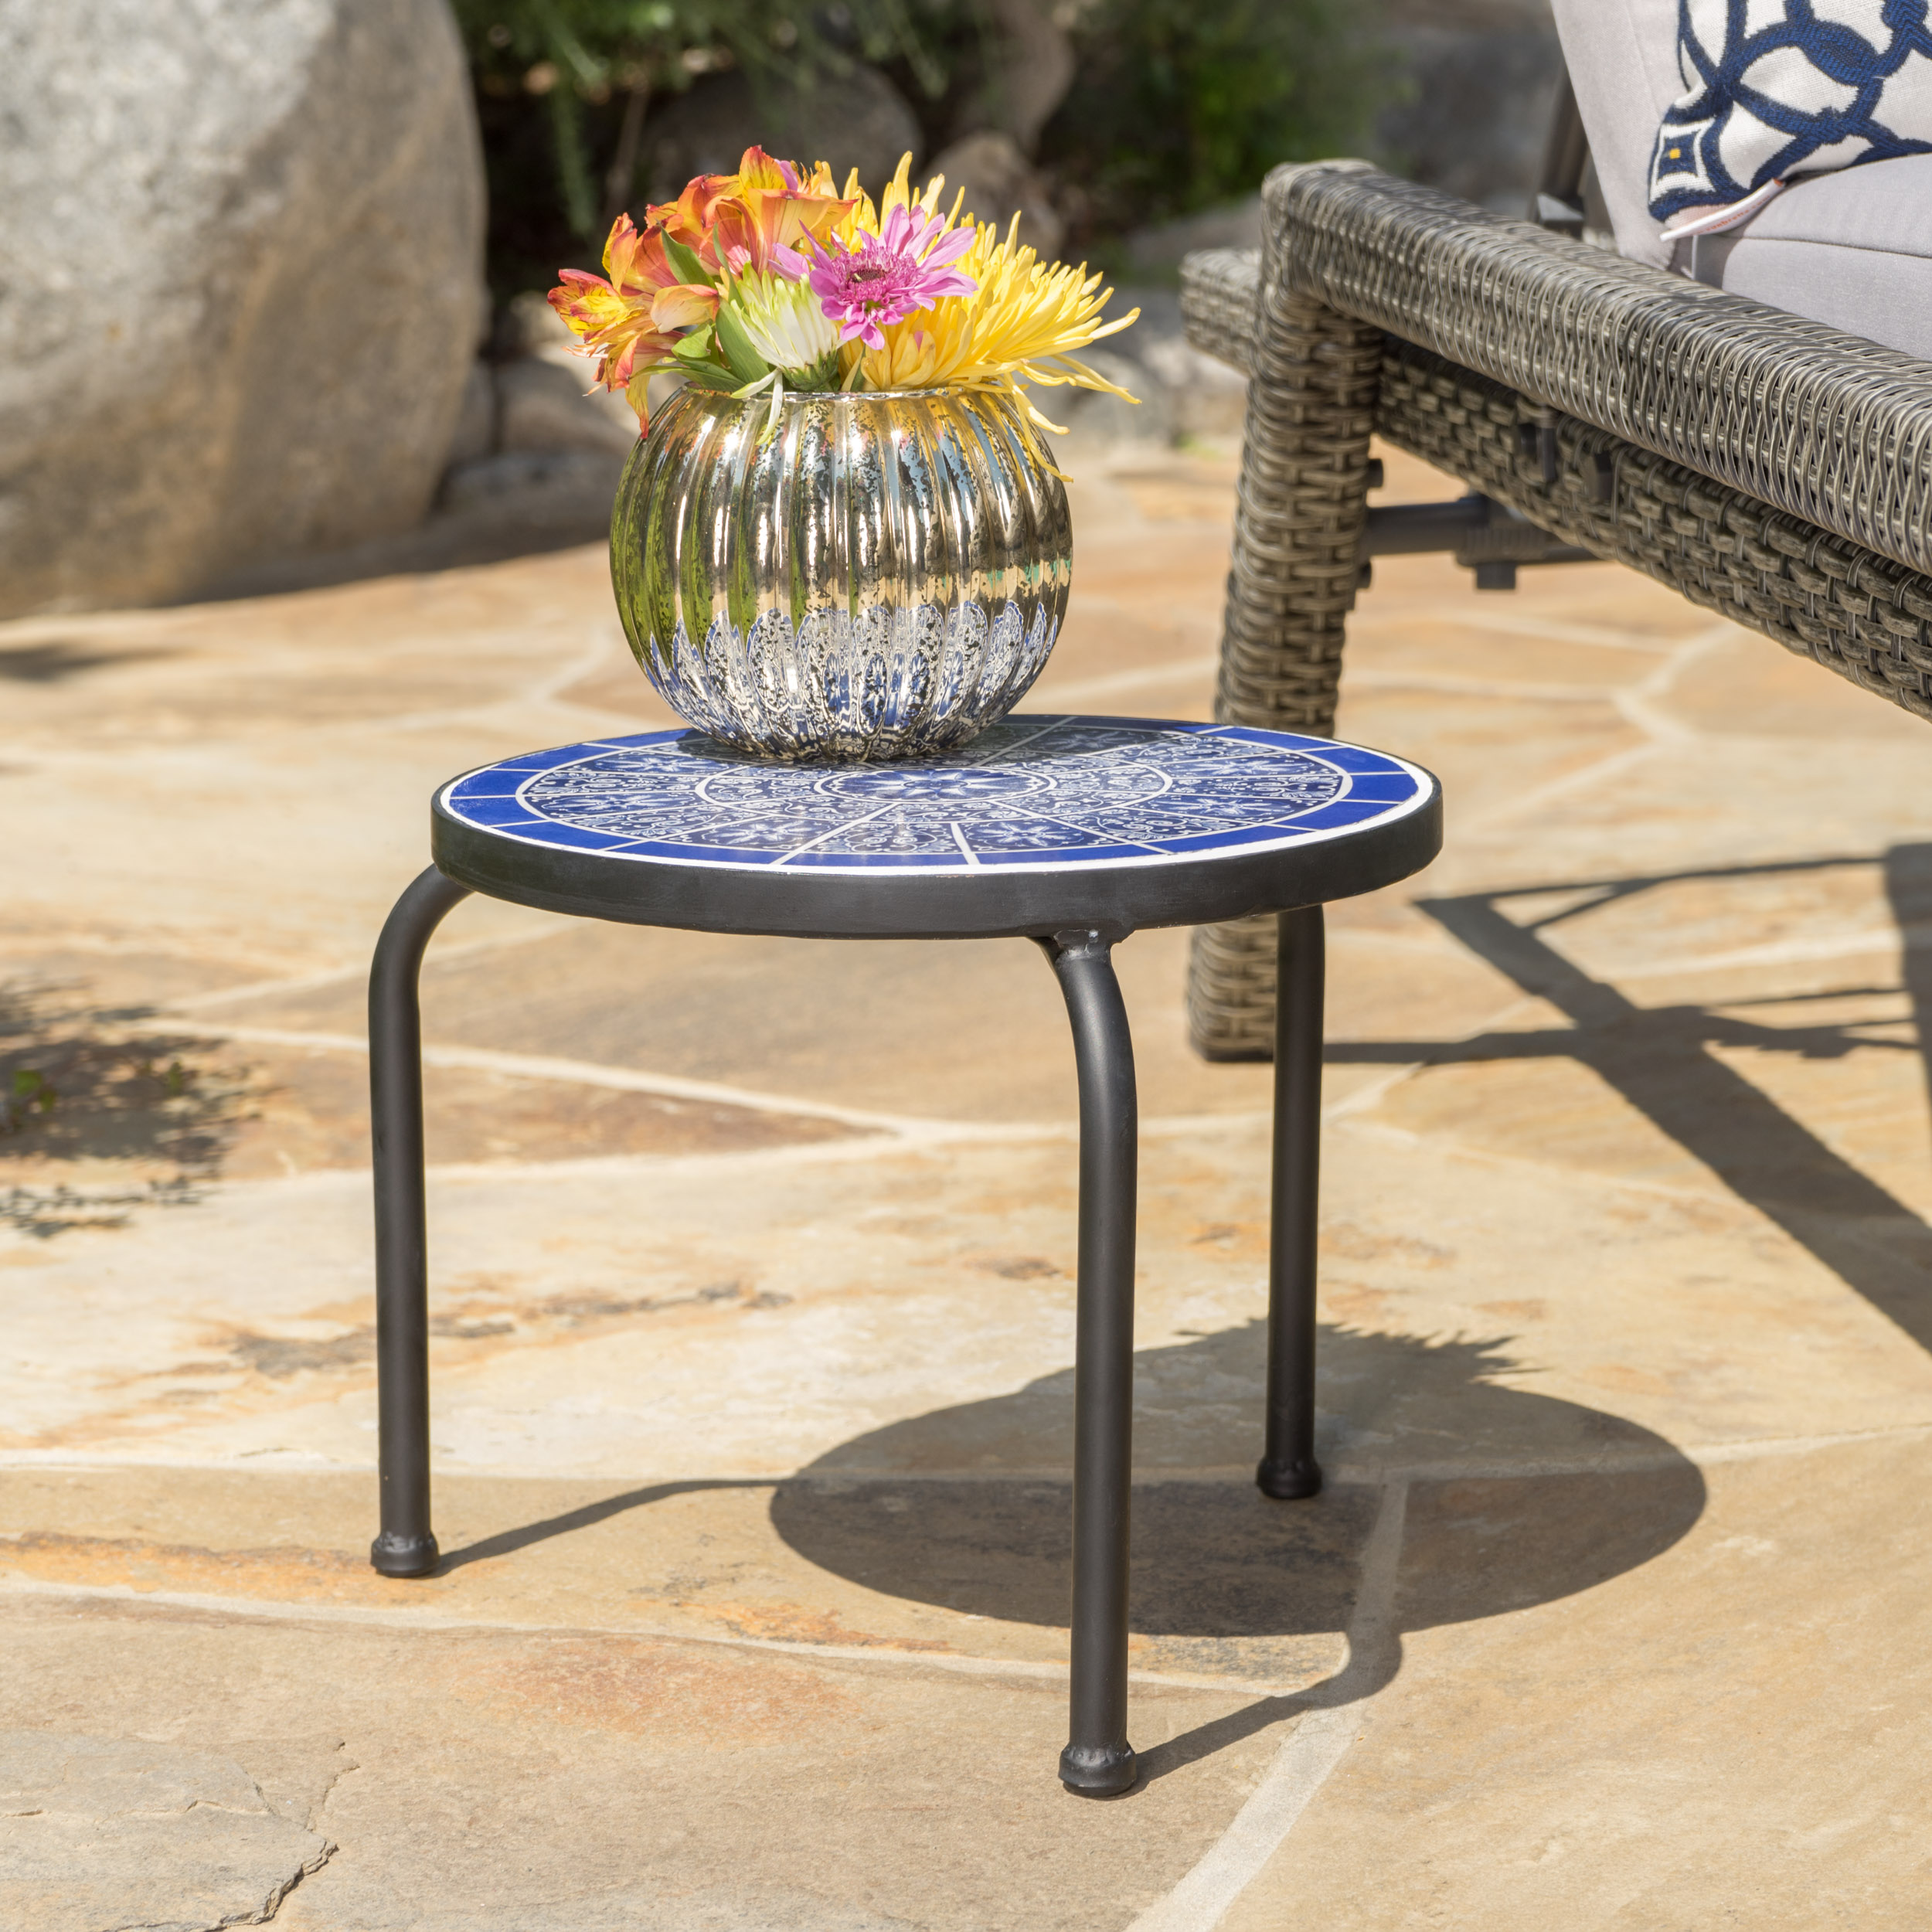 bryan outdoor ceramic tile side table with iron frame blue and white indoor bistro stackable plastic tables ultra modern lamps safavieh brogen accent purple furniture green patio